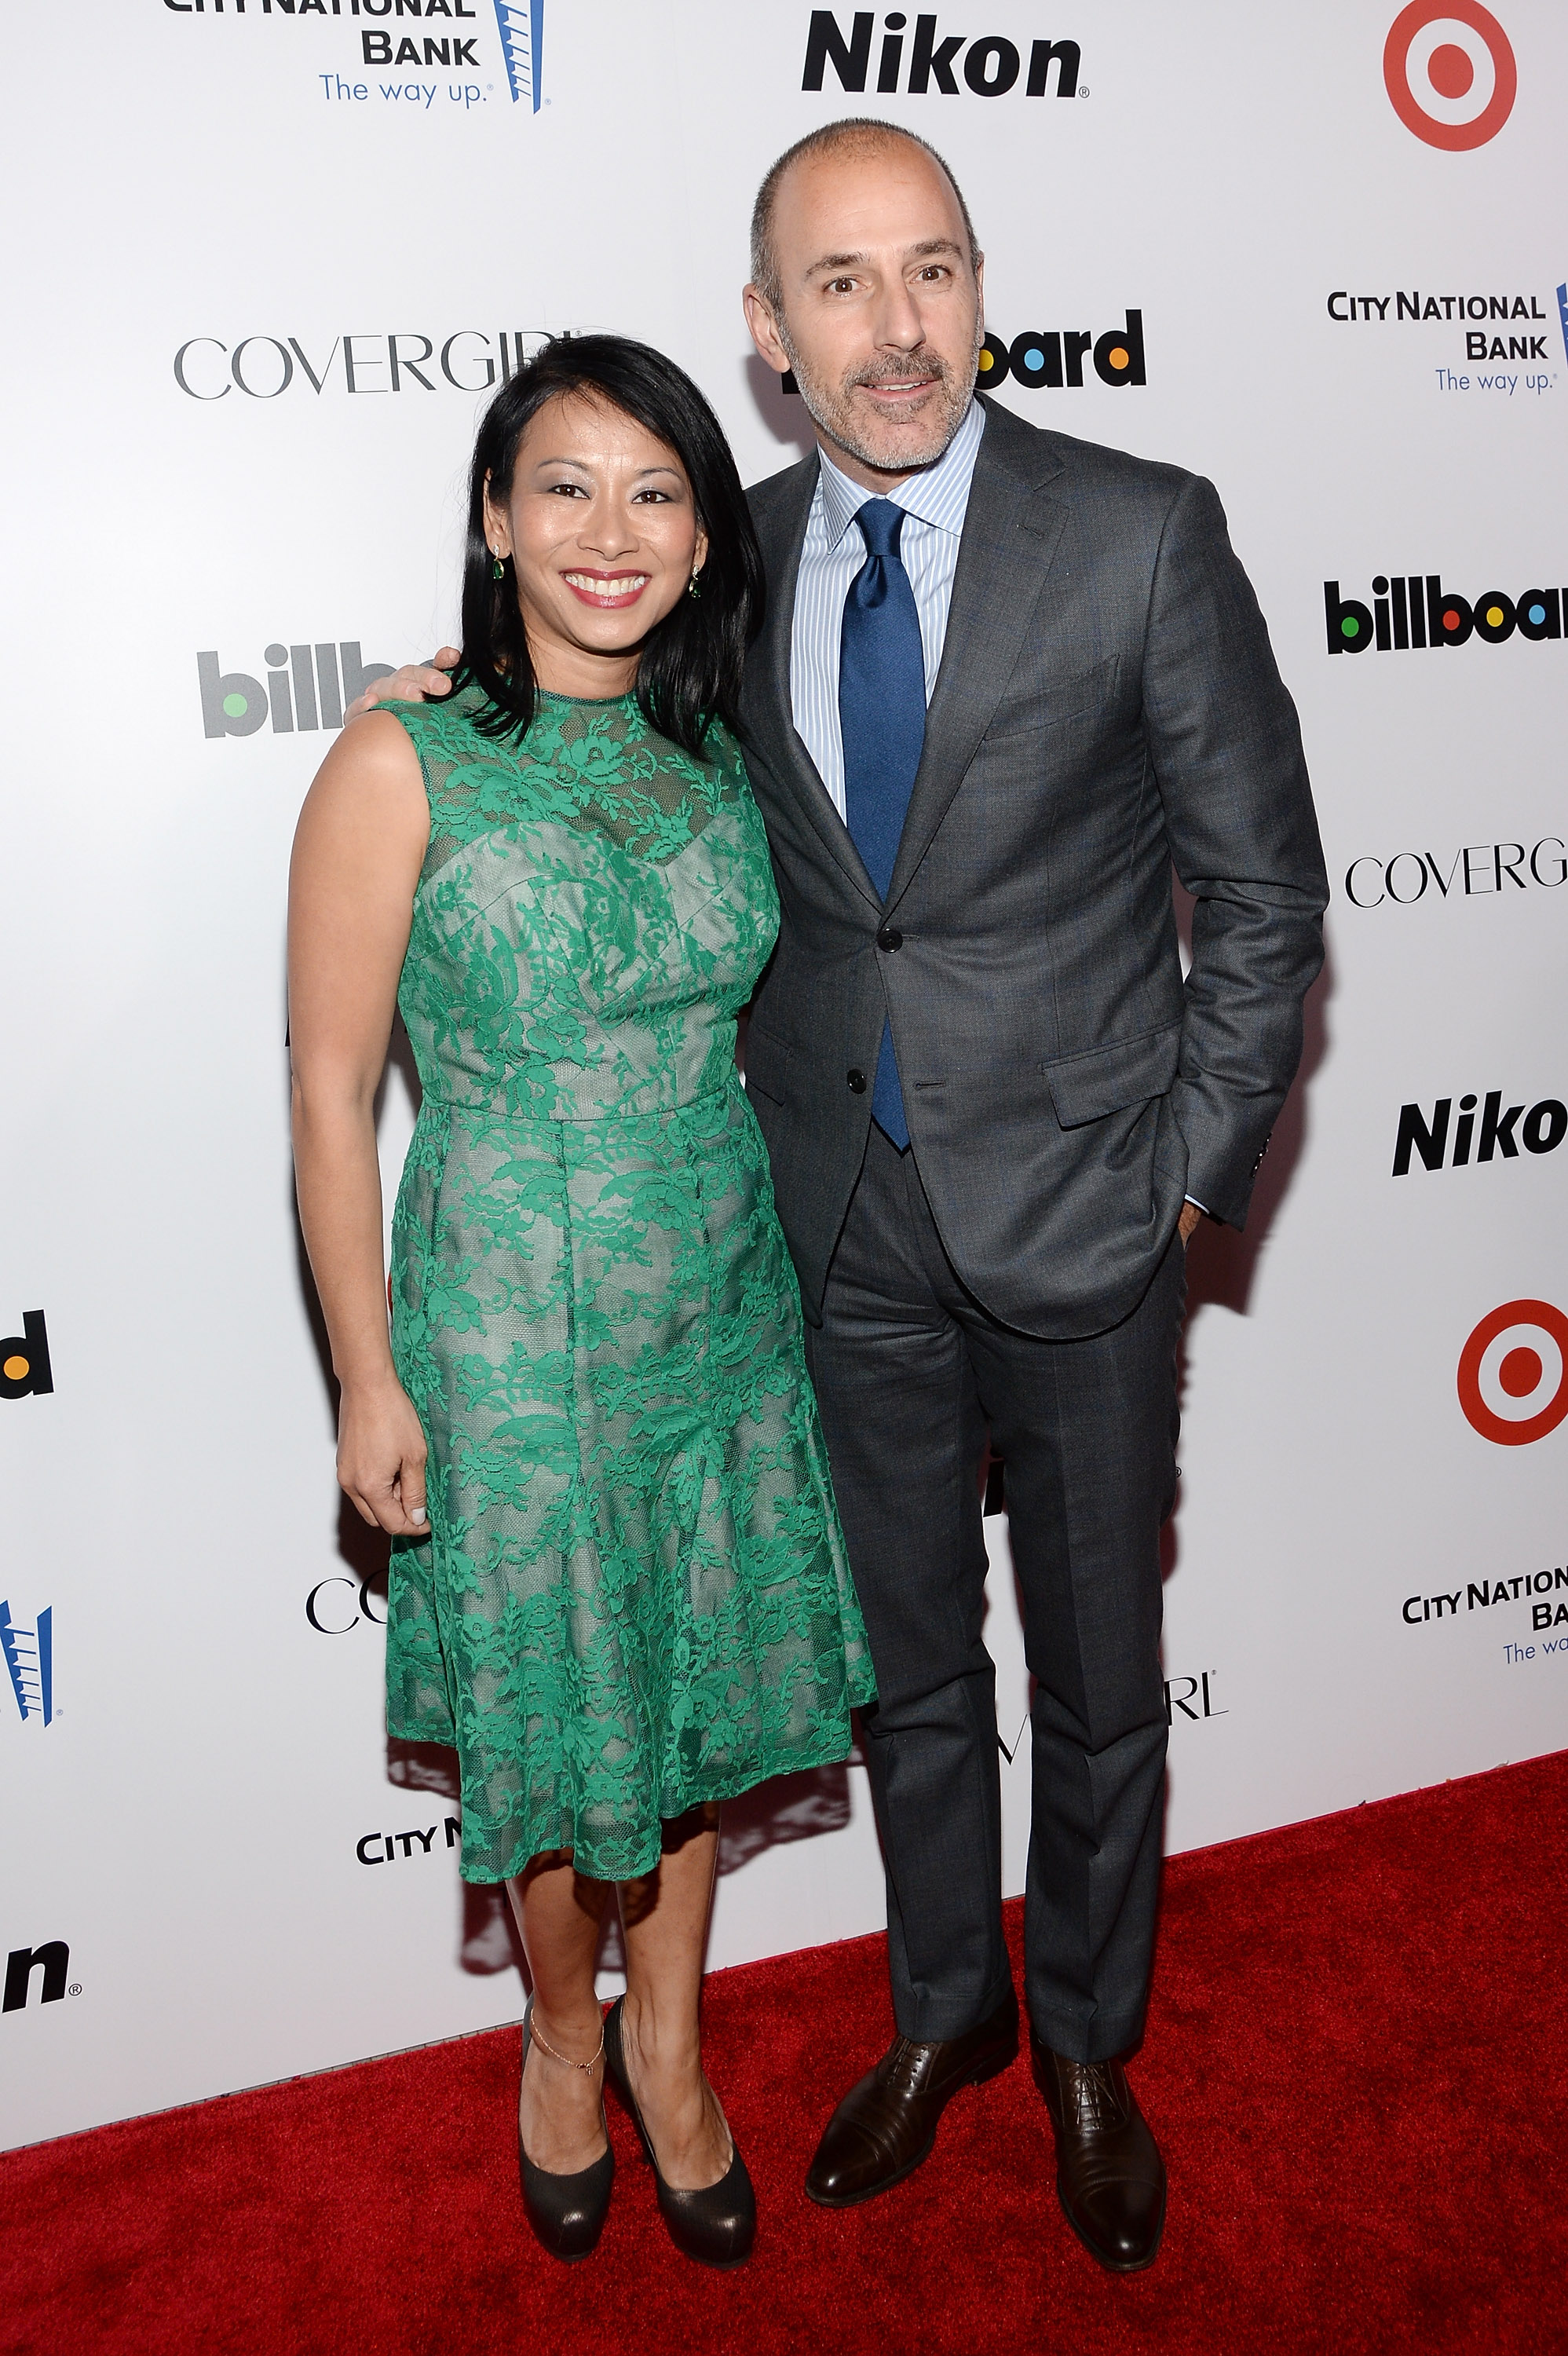 Melissa Lonner and Matt Lauer attend Billboard's annual Women in Music event at Capitale on December 10, 2013 in New York City. (Photo by Larry Busacca/Getty Images)